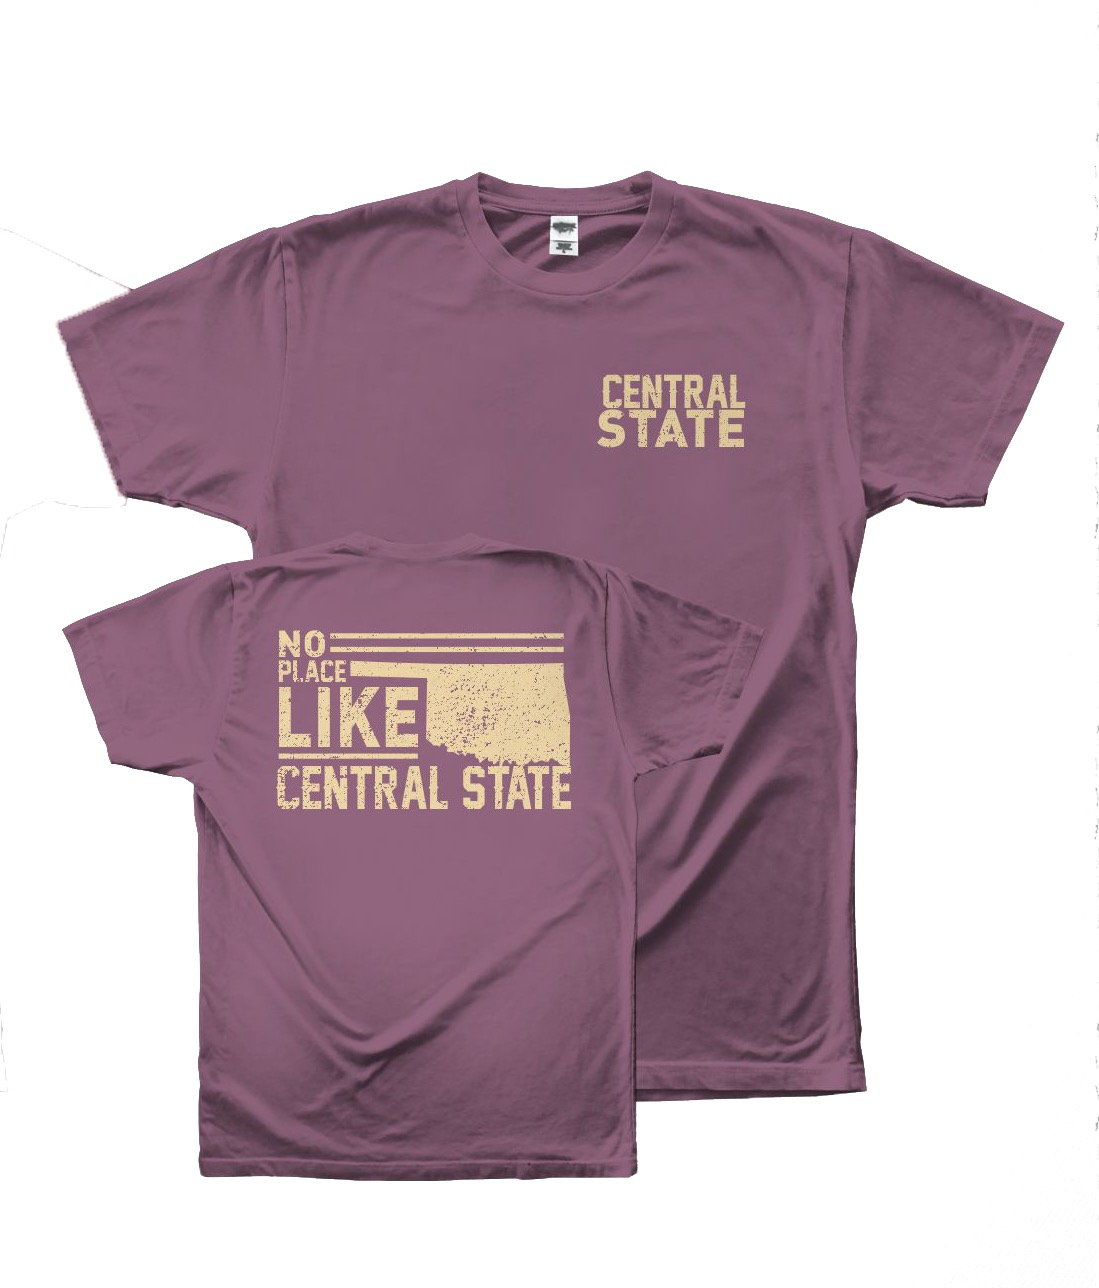 Central State Tee